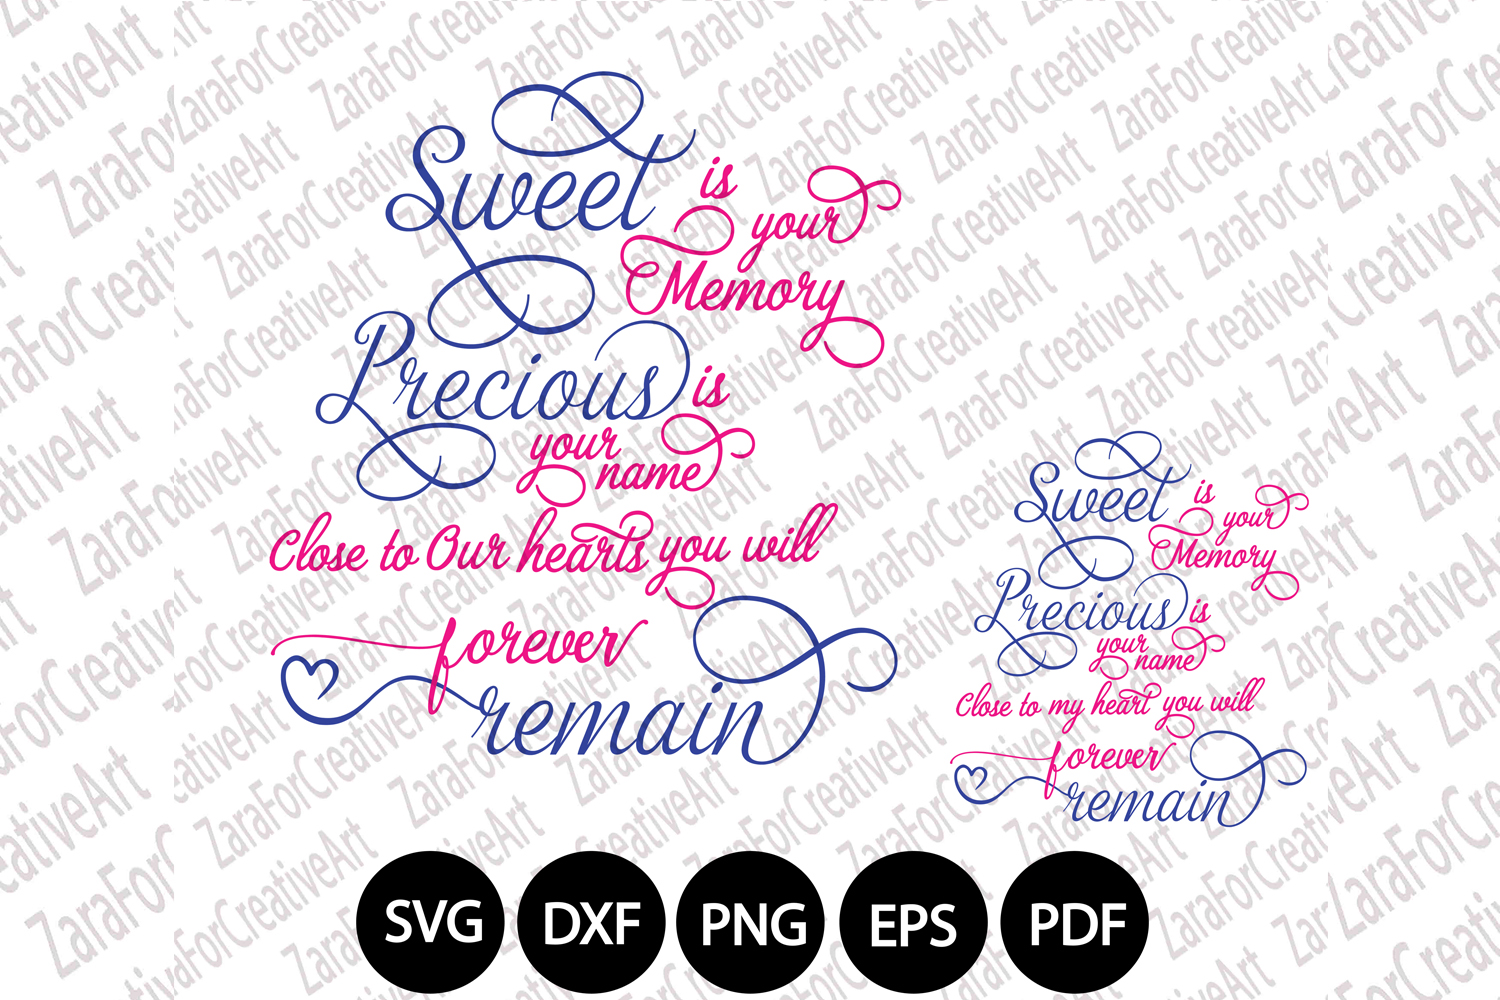 Sweet is your memory Precious is your name svg dxf png eps example image 1